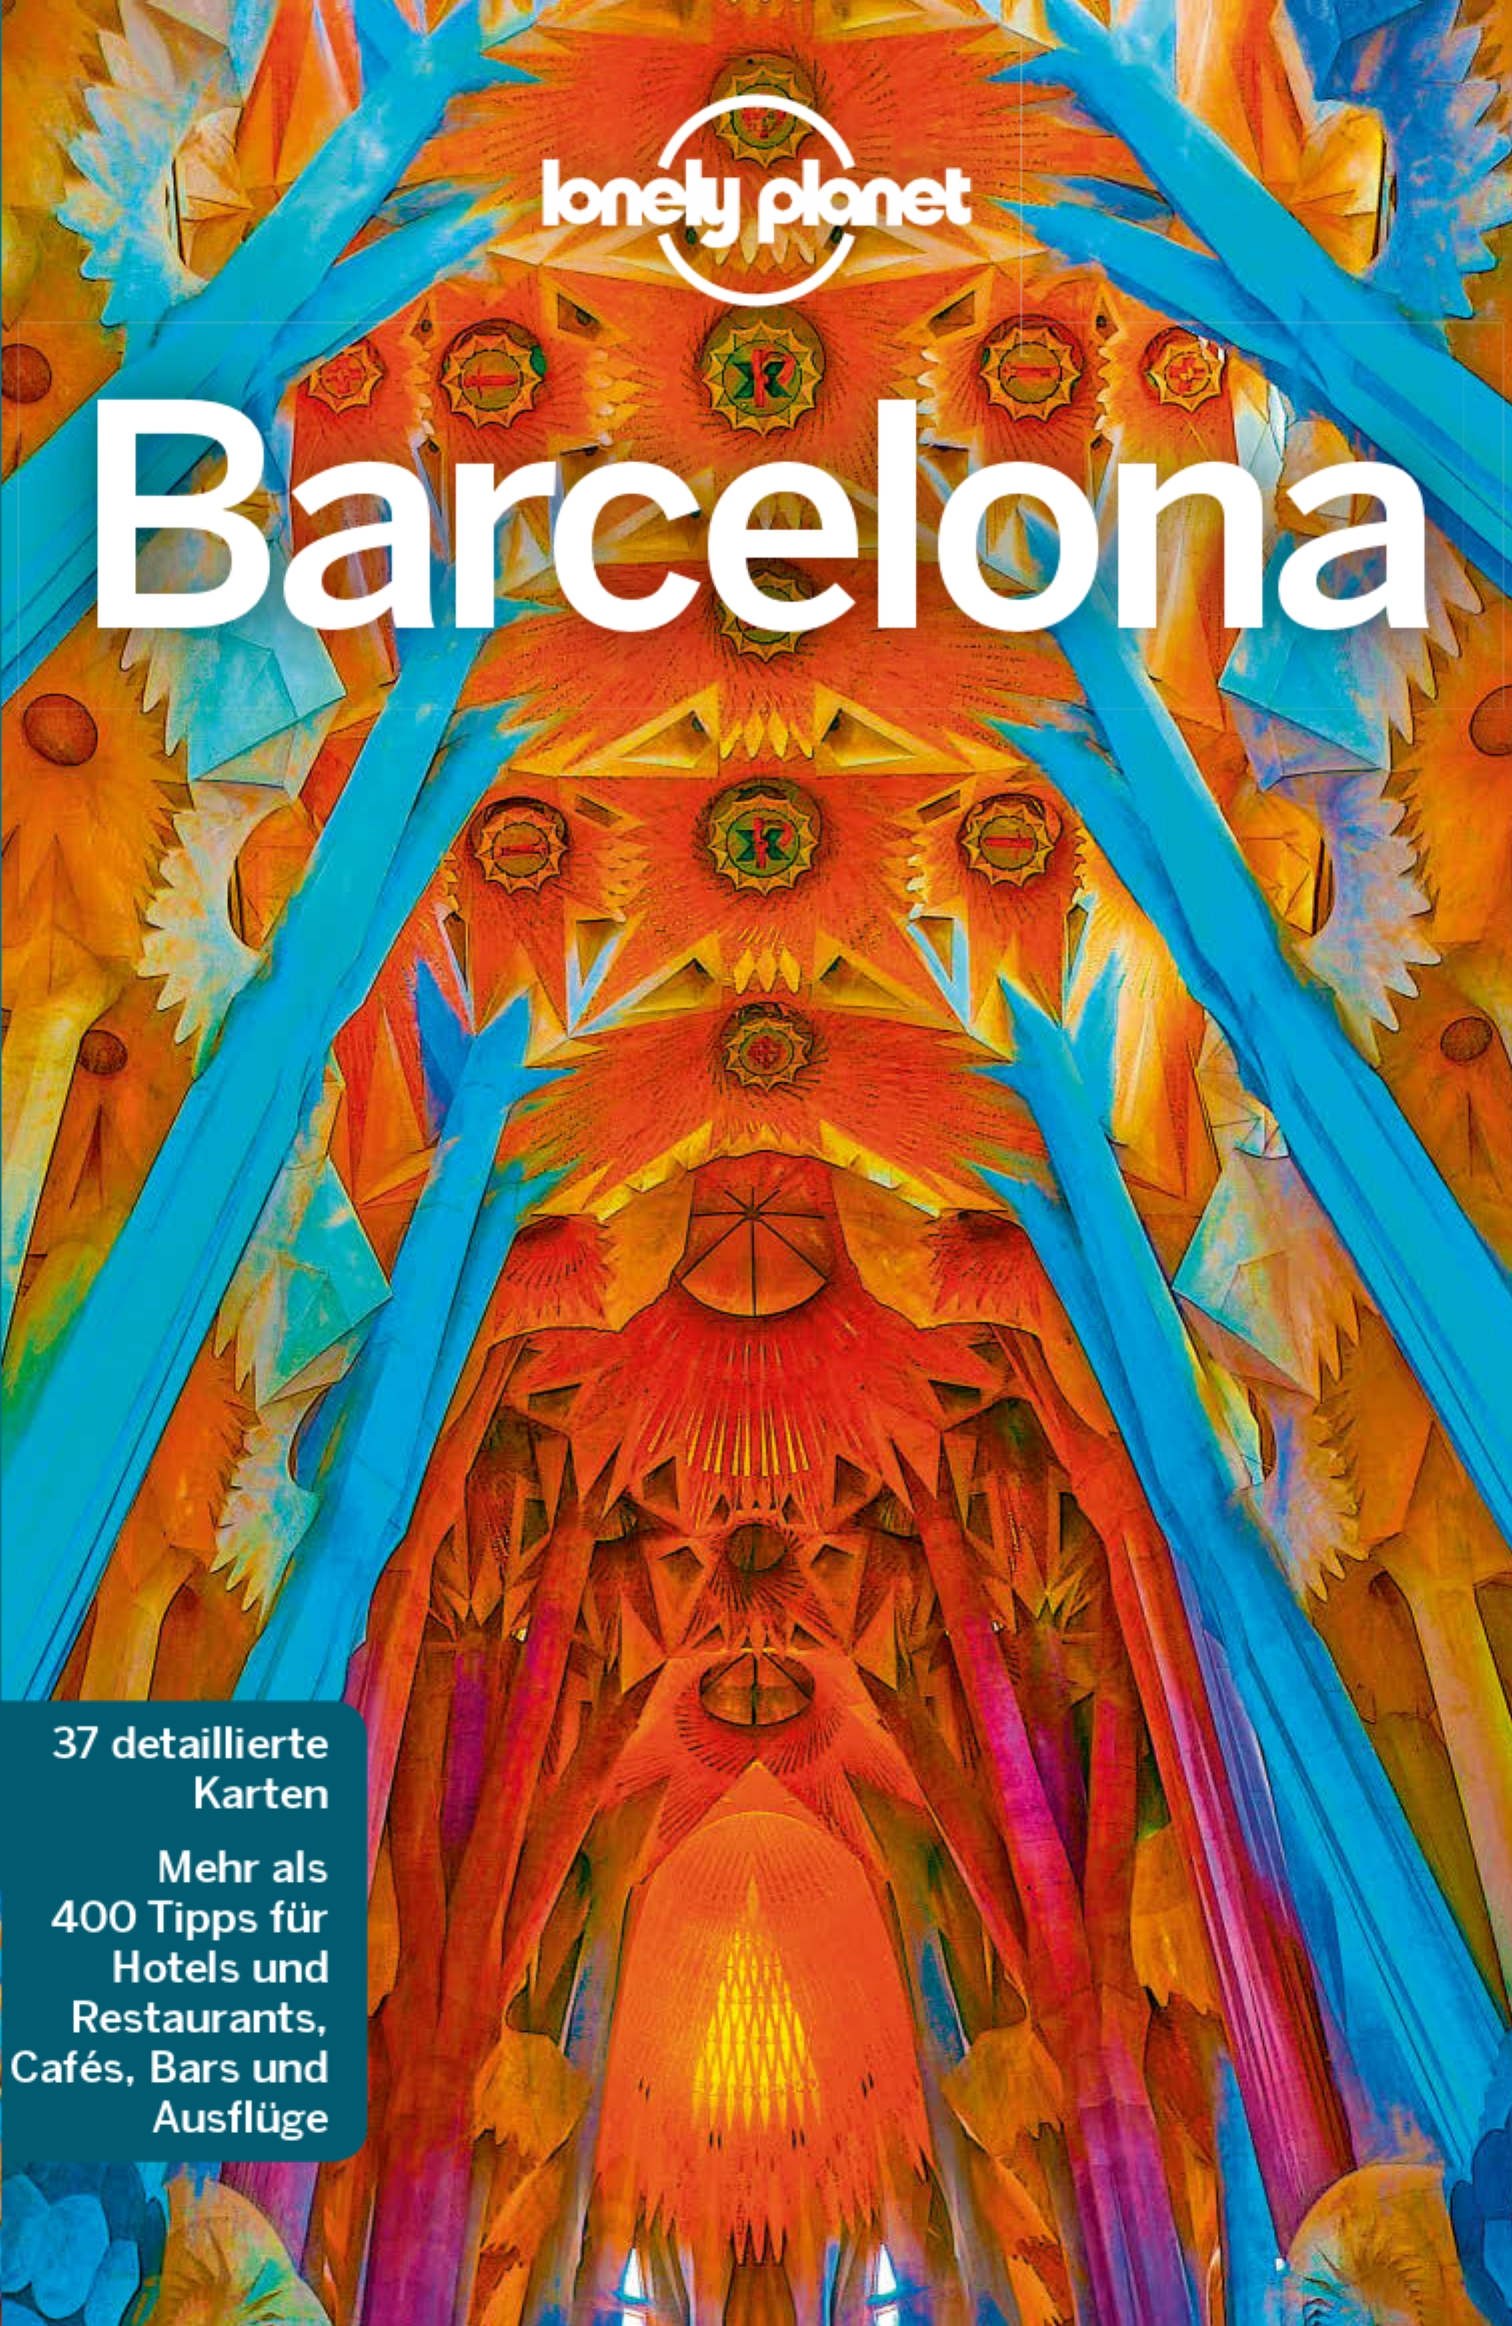 Lonely Planet - Barcelona (Cover)